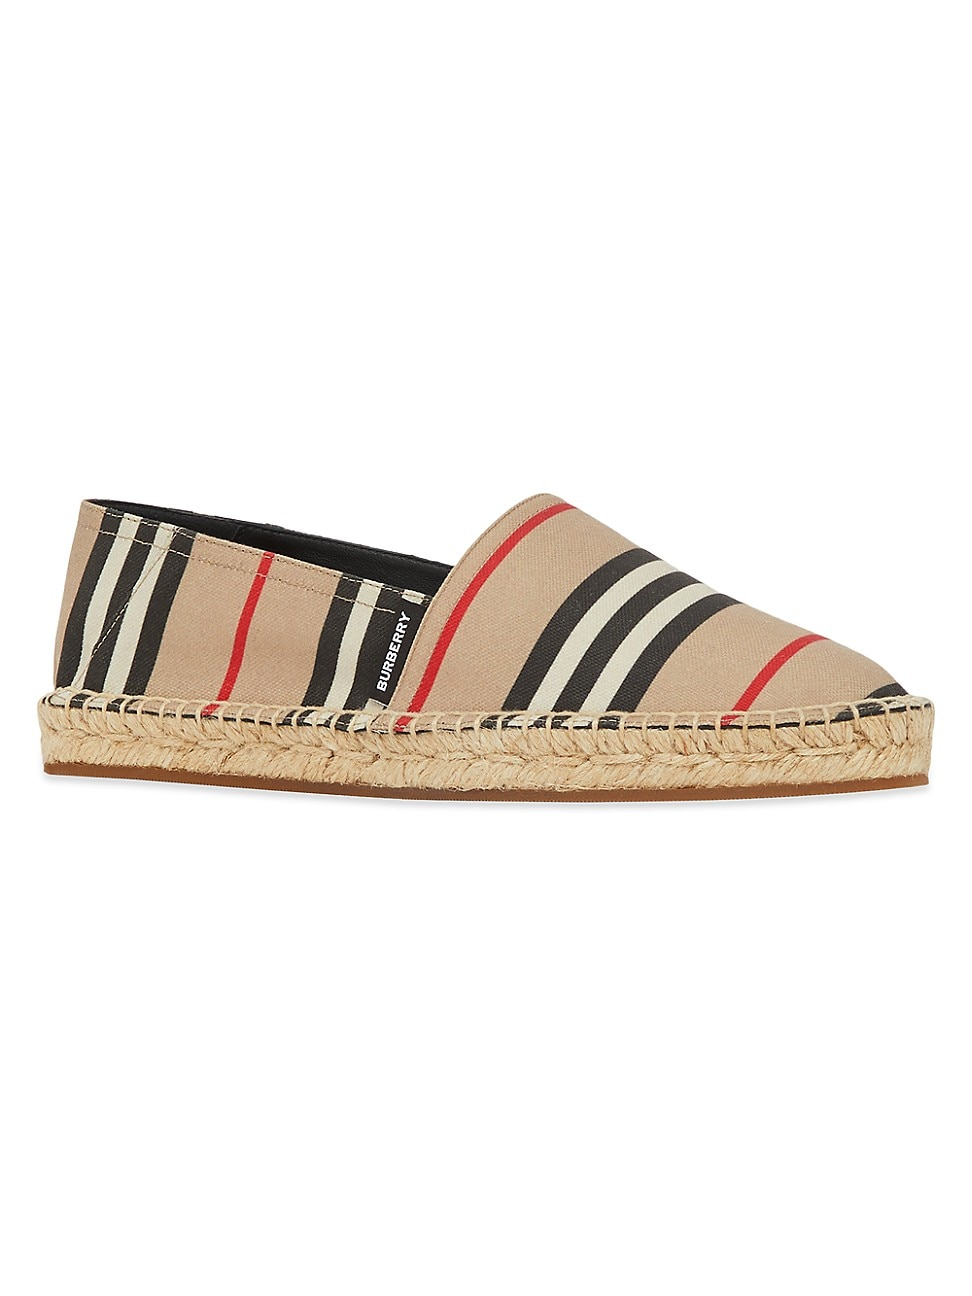 Burberry WOMEN'S ICON STRIPE ESPADRILLES